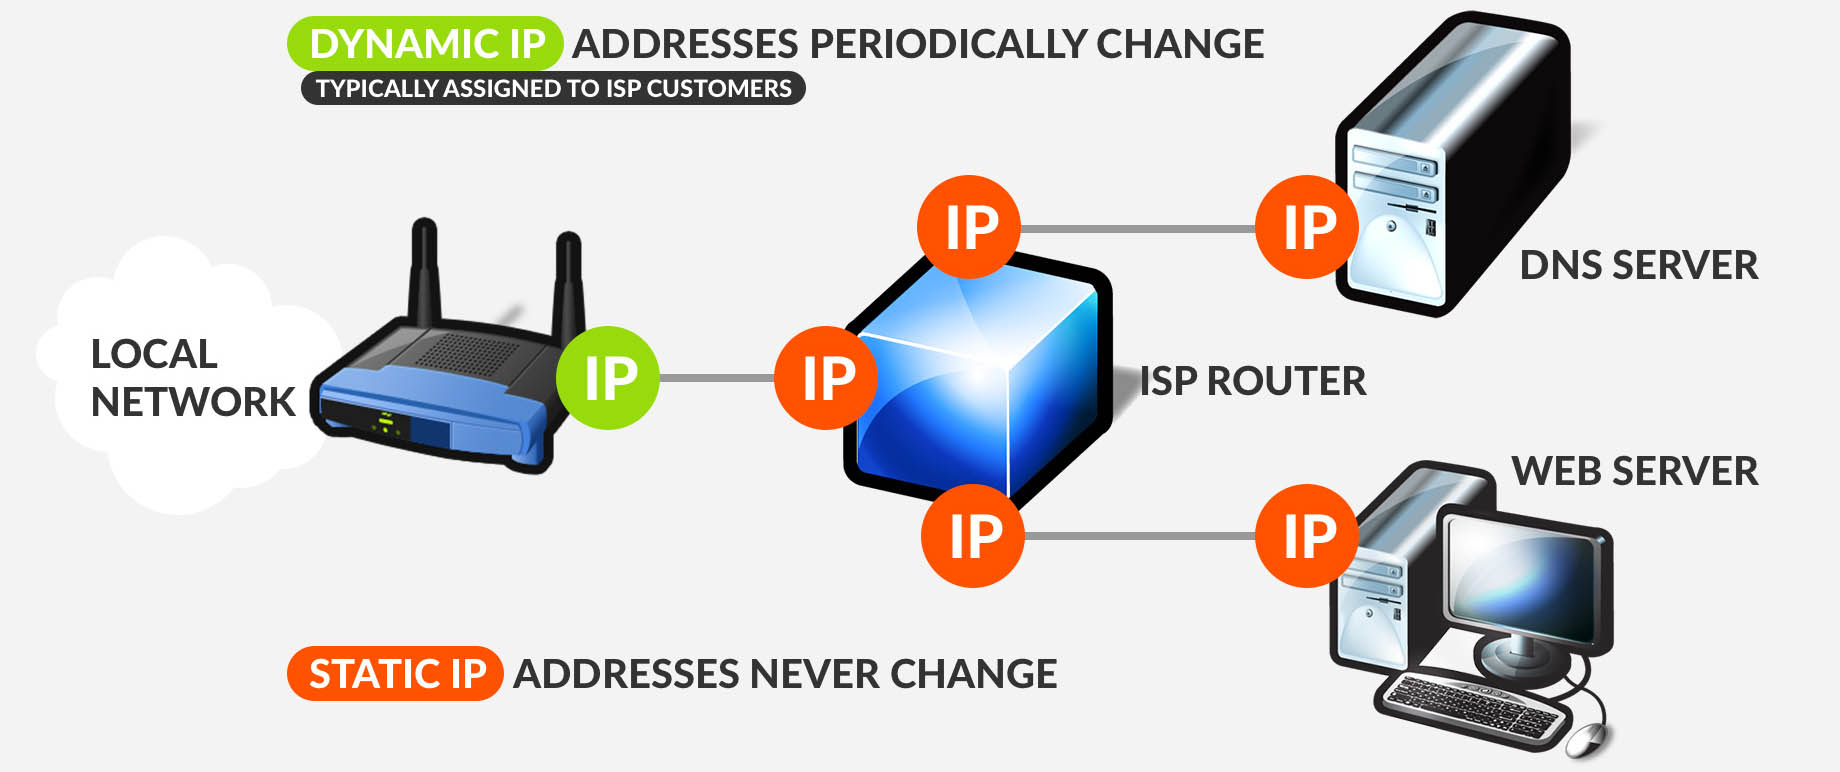 What is Static IP address?